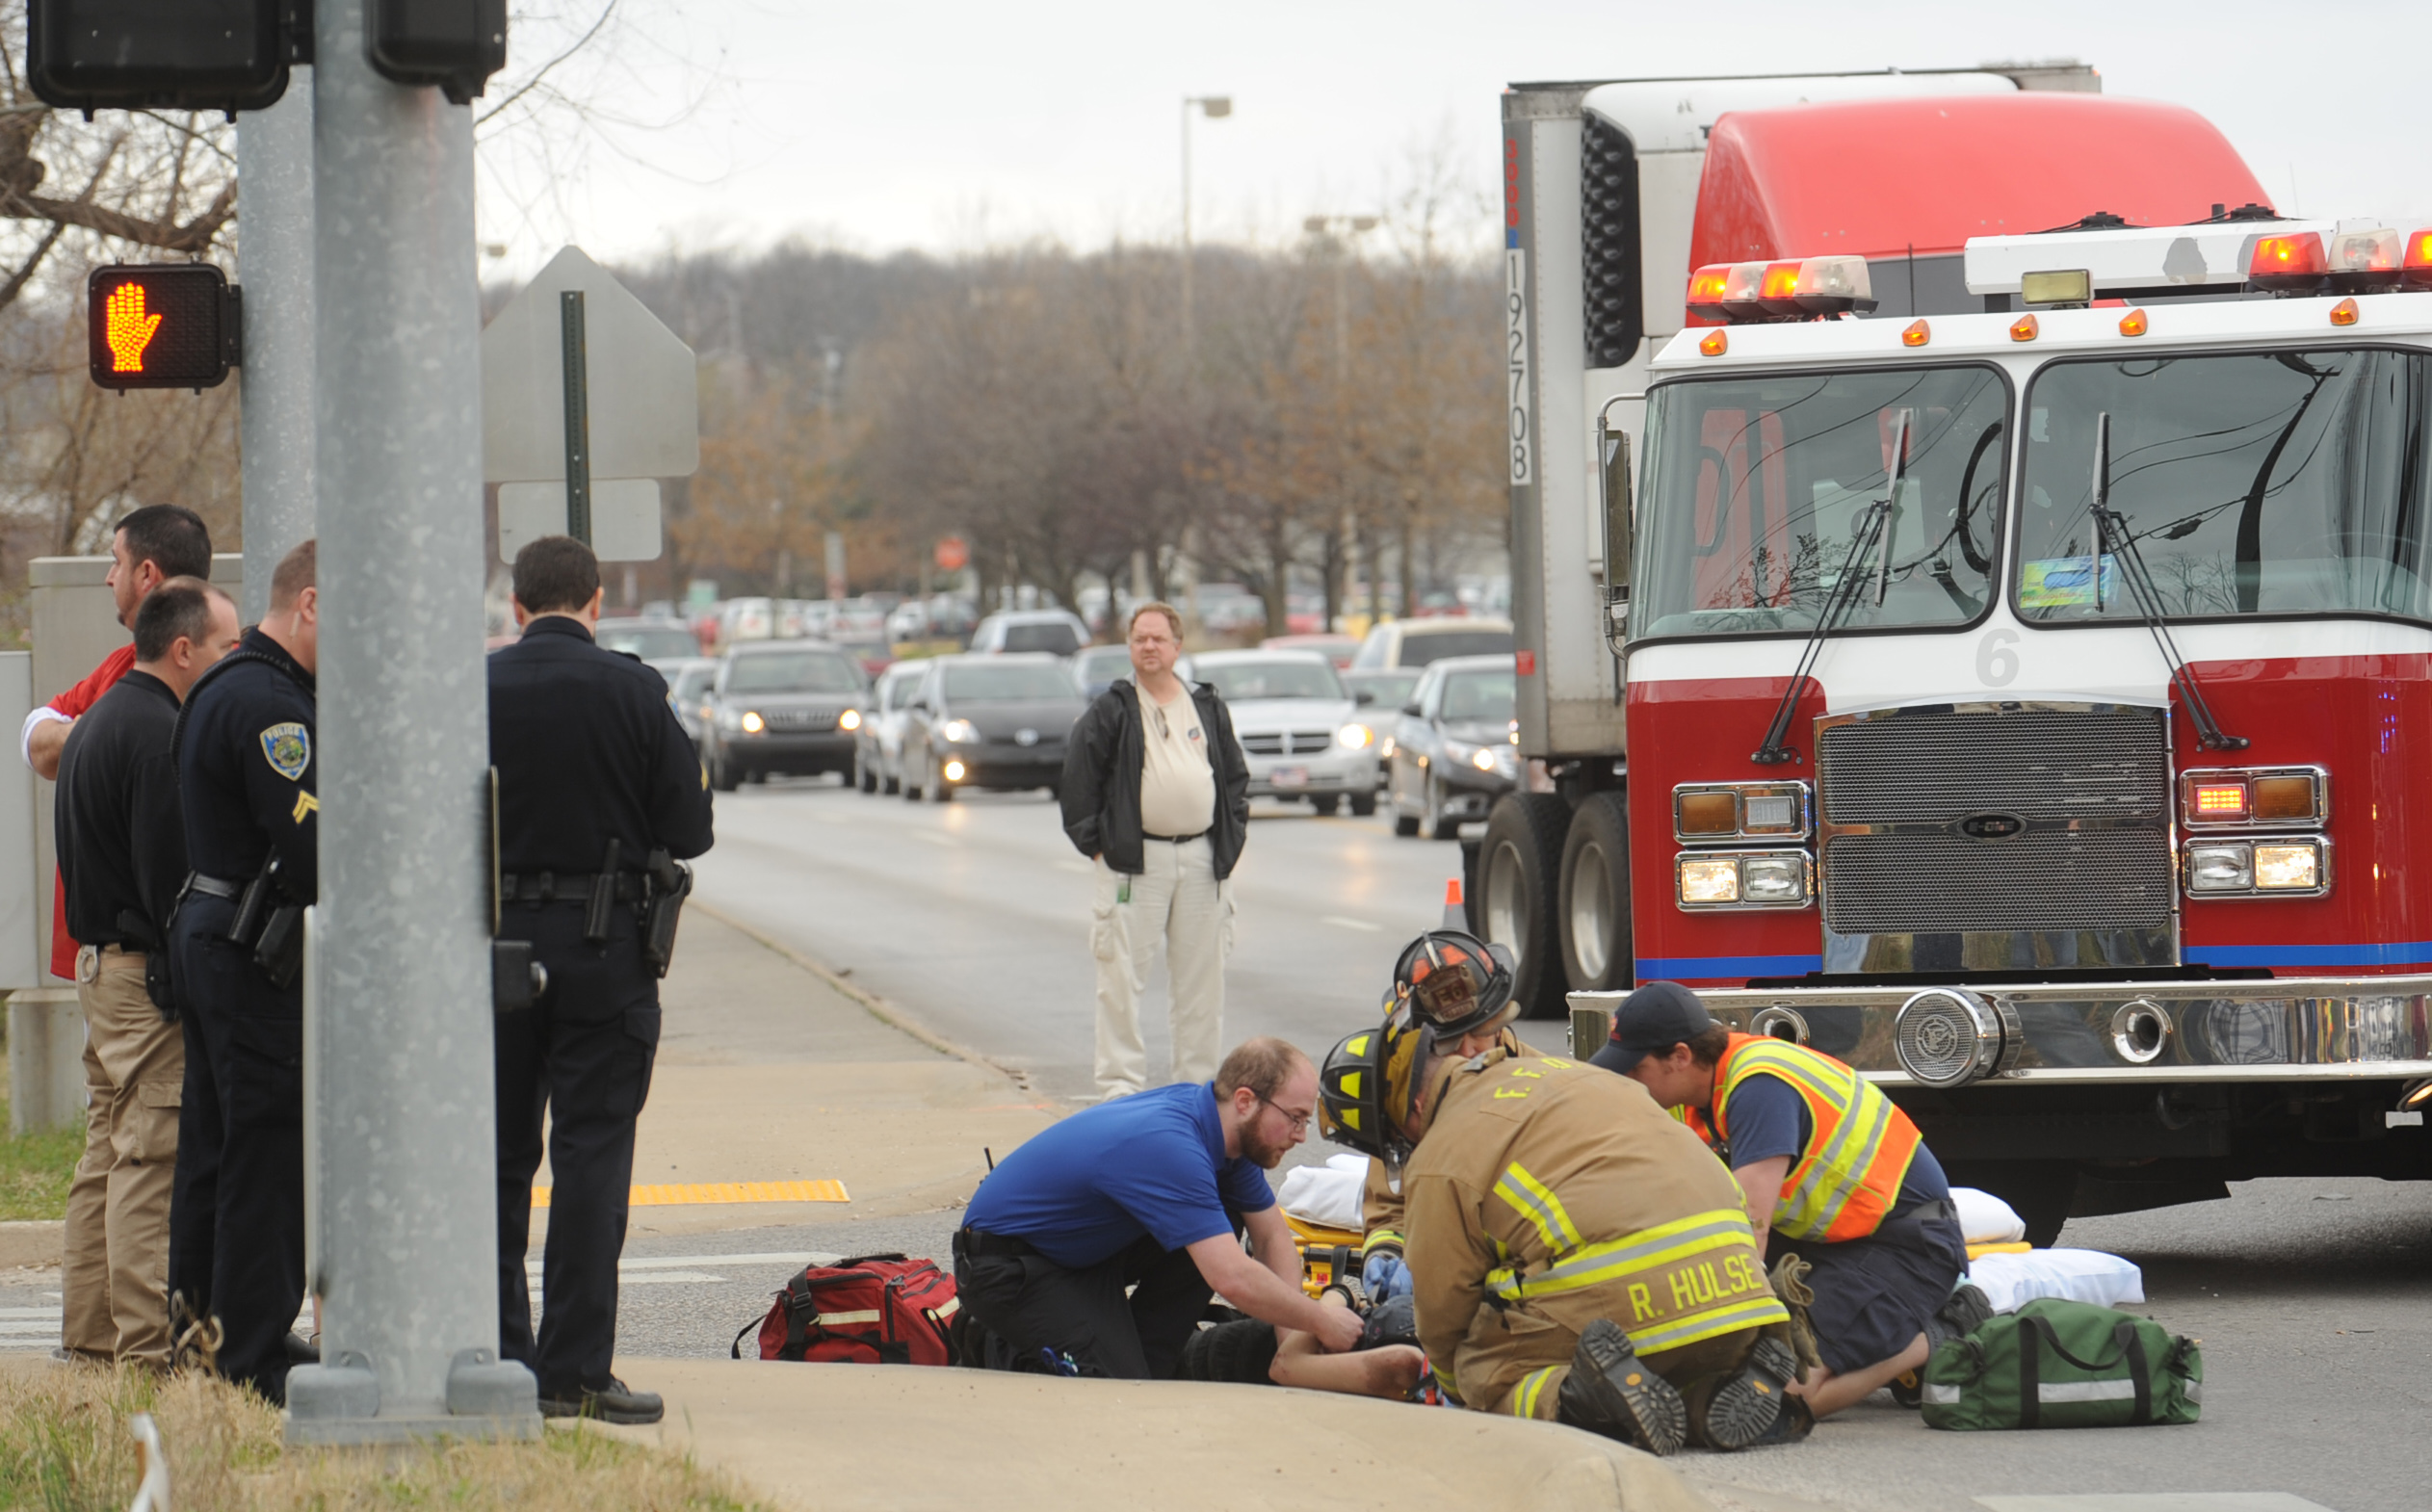 Pedestrian Accident Liability Claims | What To Do After ... |Pedestrian Accidents